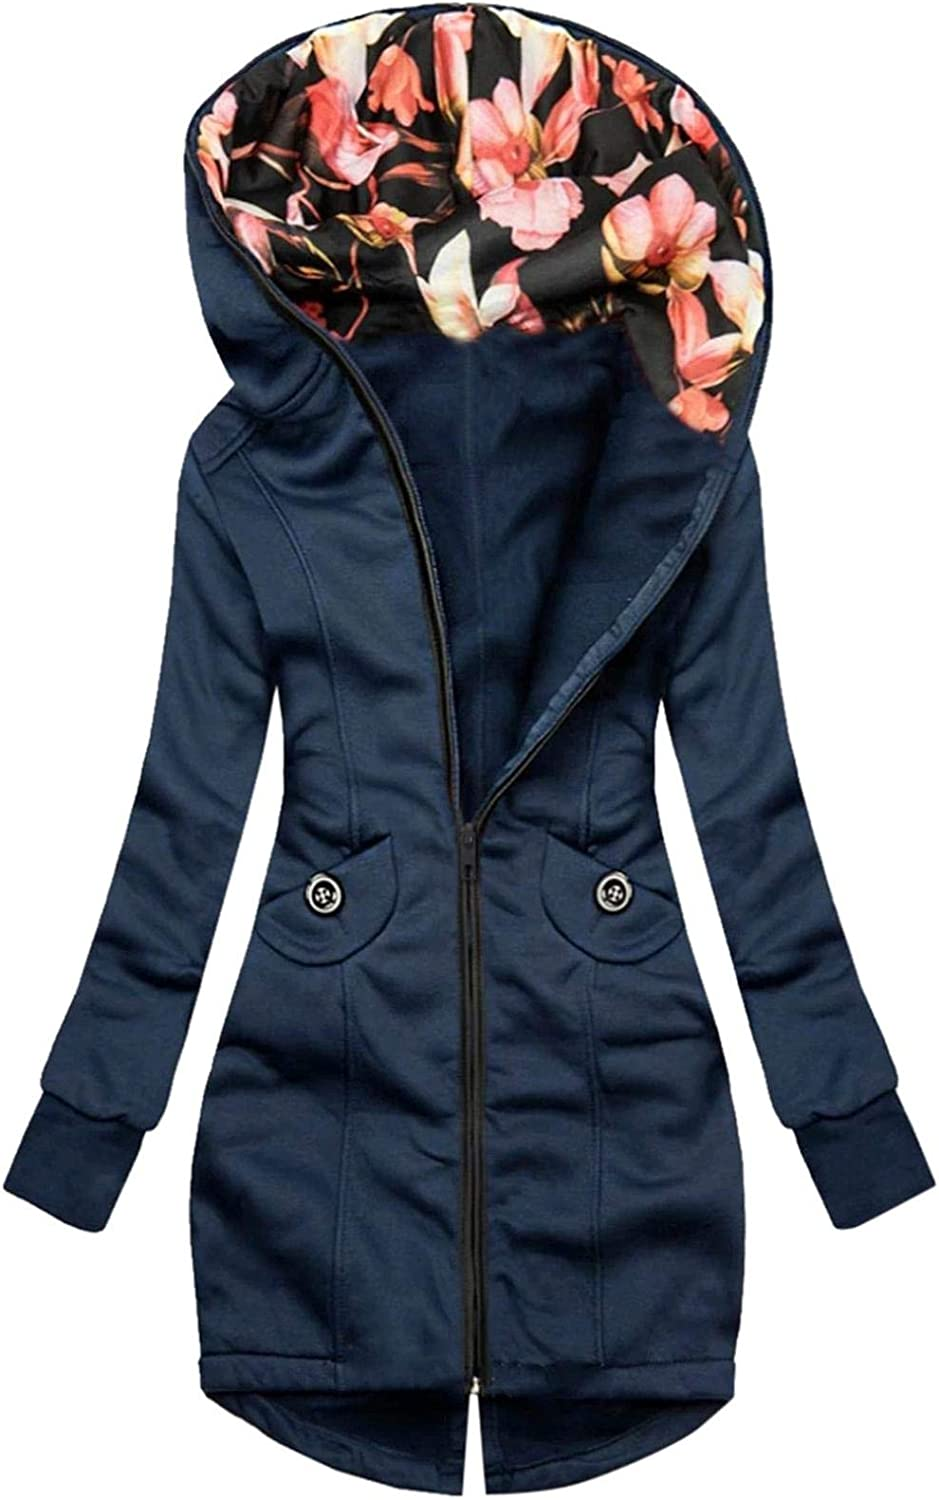 Smileyth Womens El Paso Mall Solid Color Long Coat 70% OFF Outlet Floral Hoodie Prin Fashion